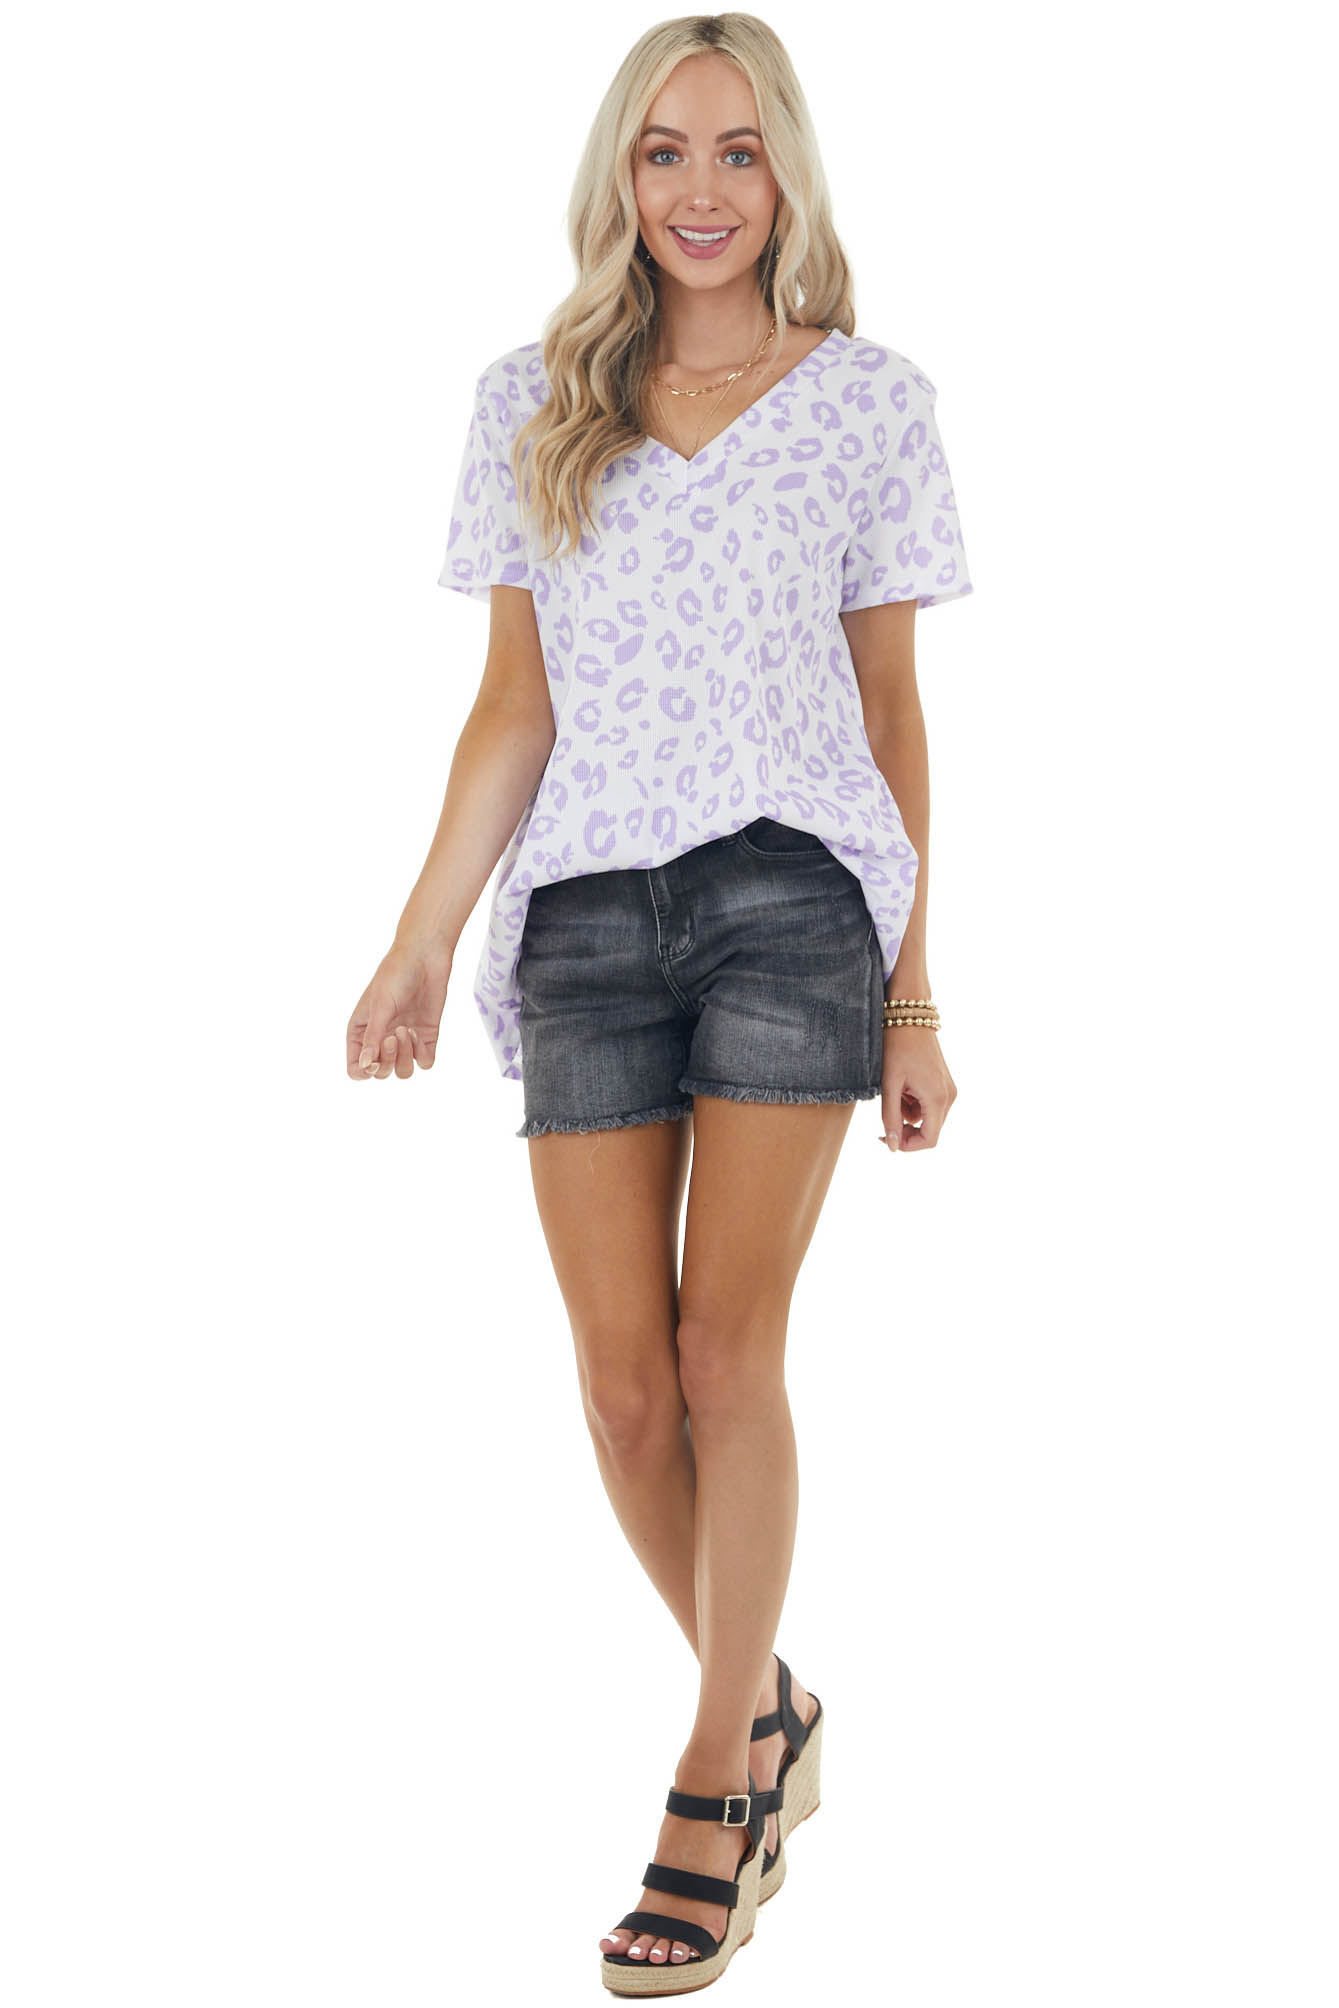 Iris and Off White Leopard Print Short Sleeve Knit Top